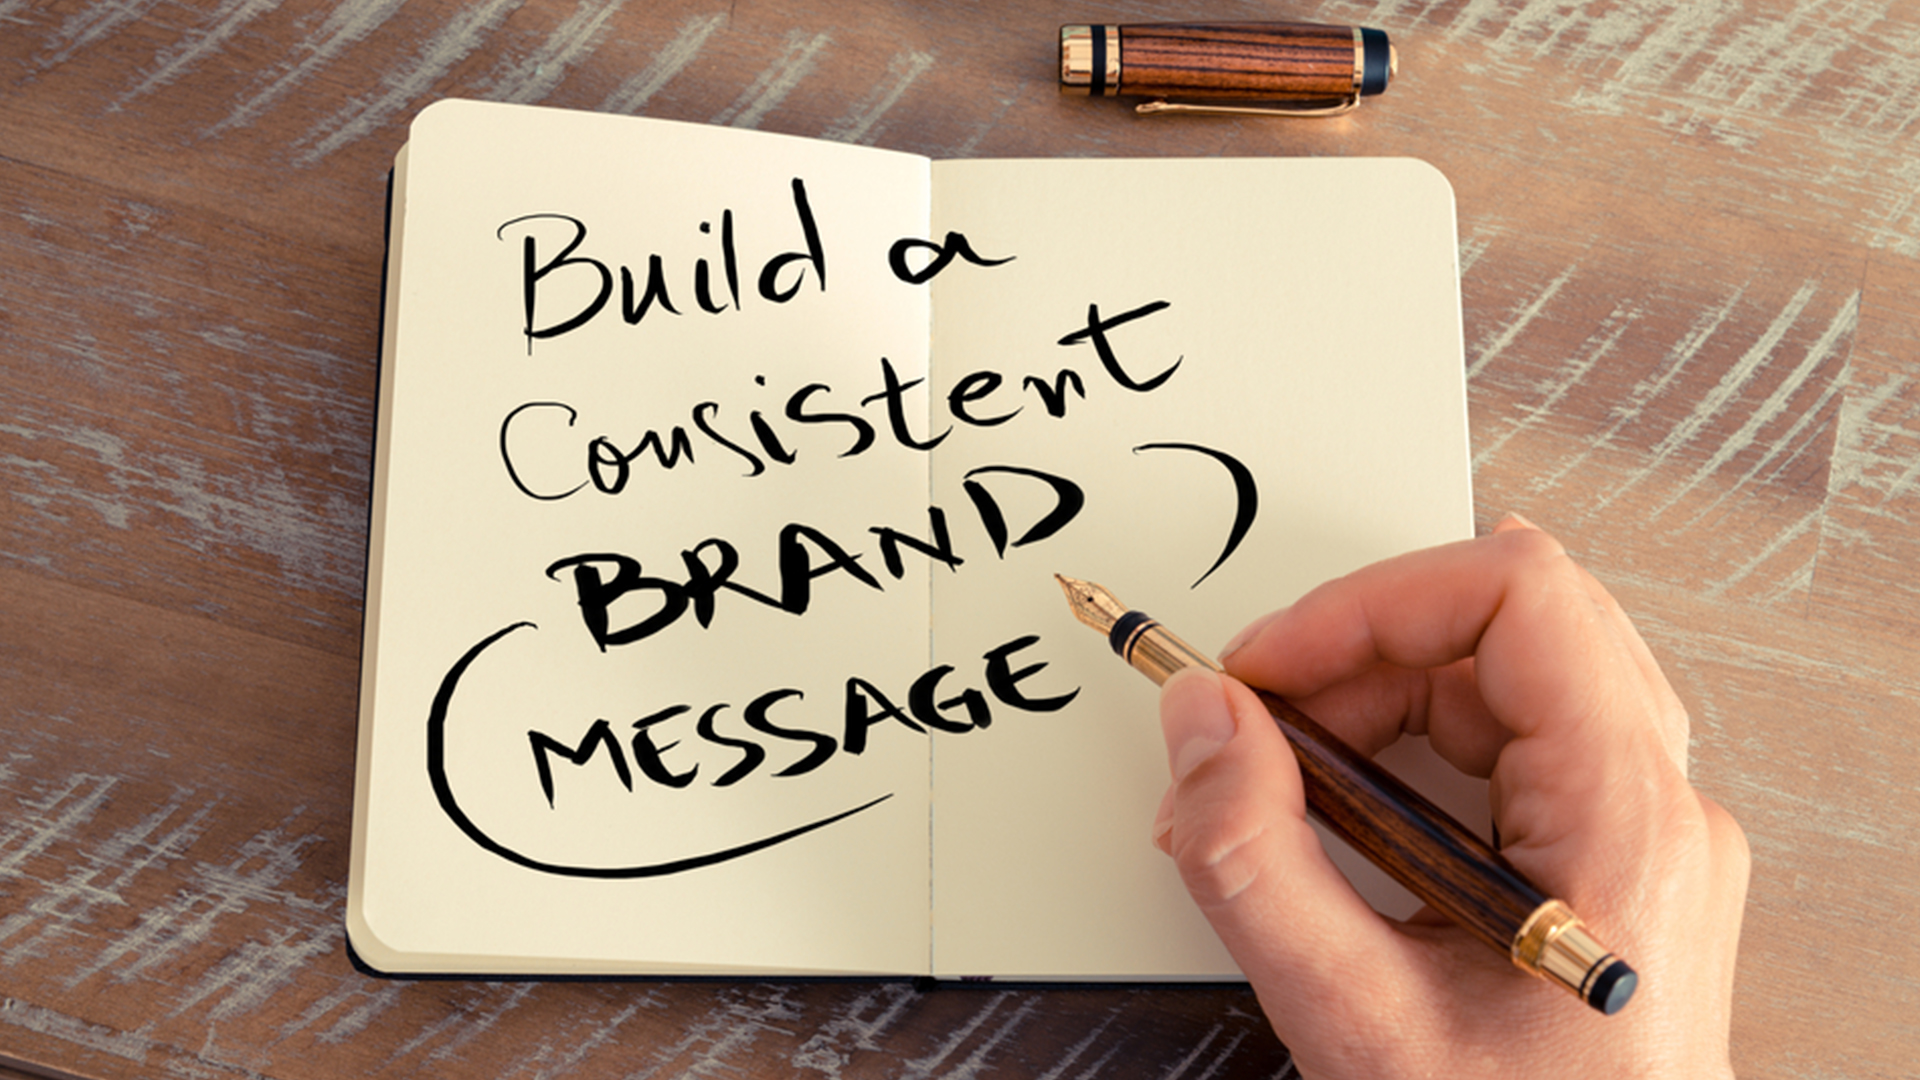 Convey A Brand Message